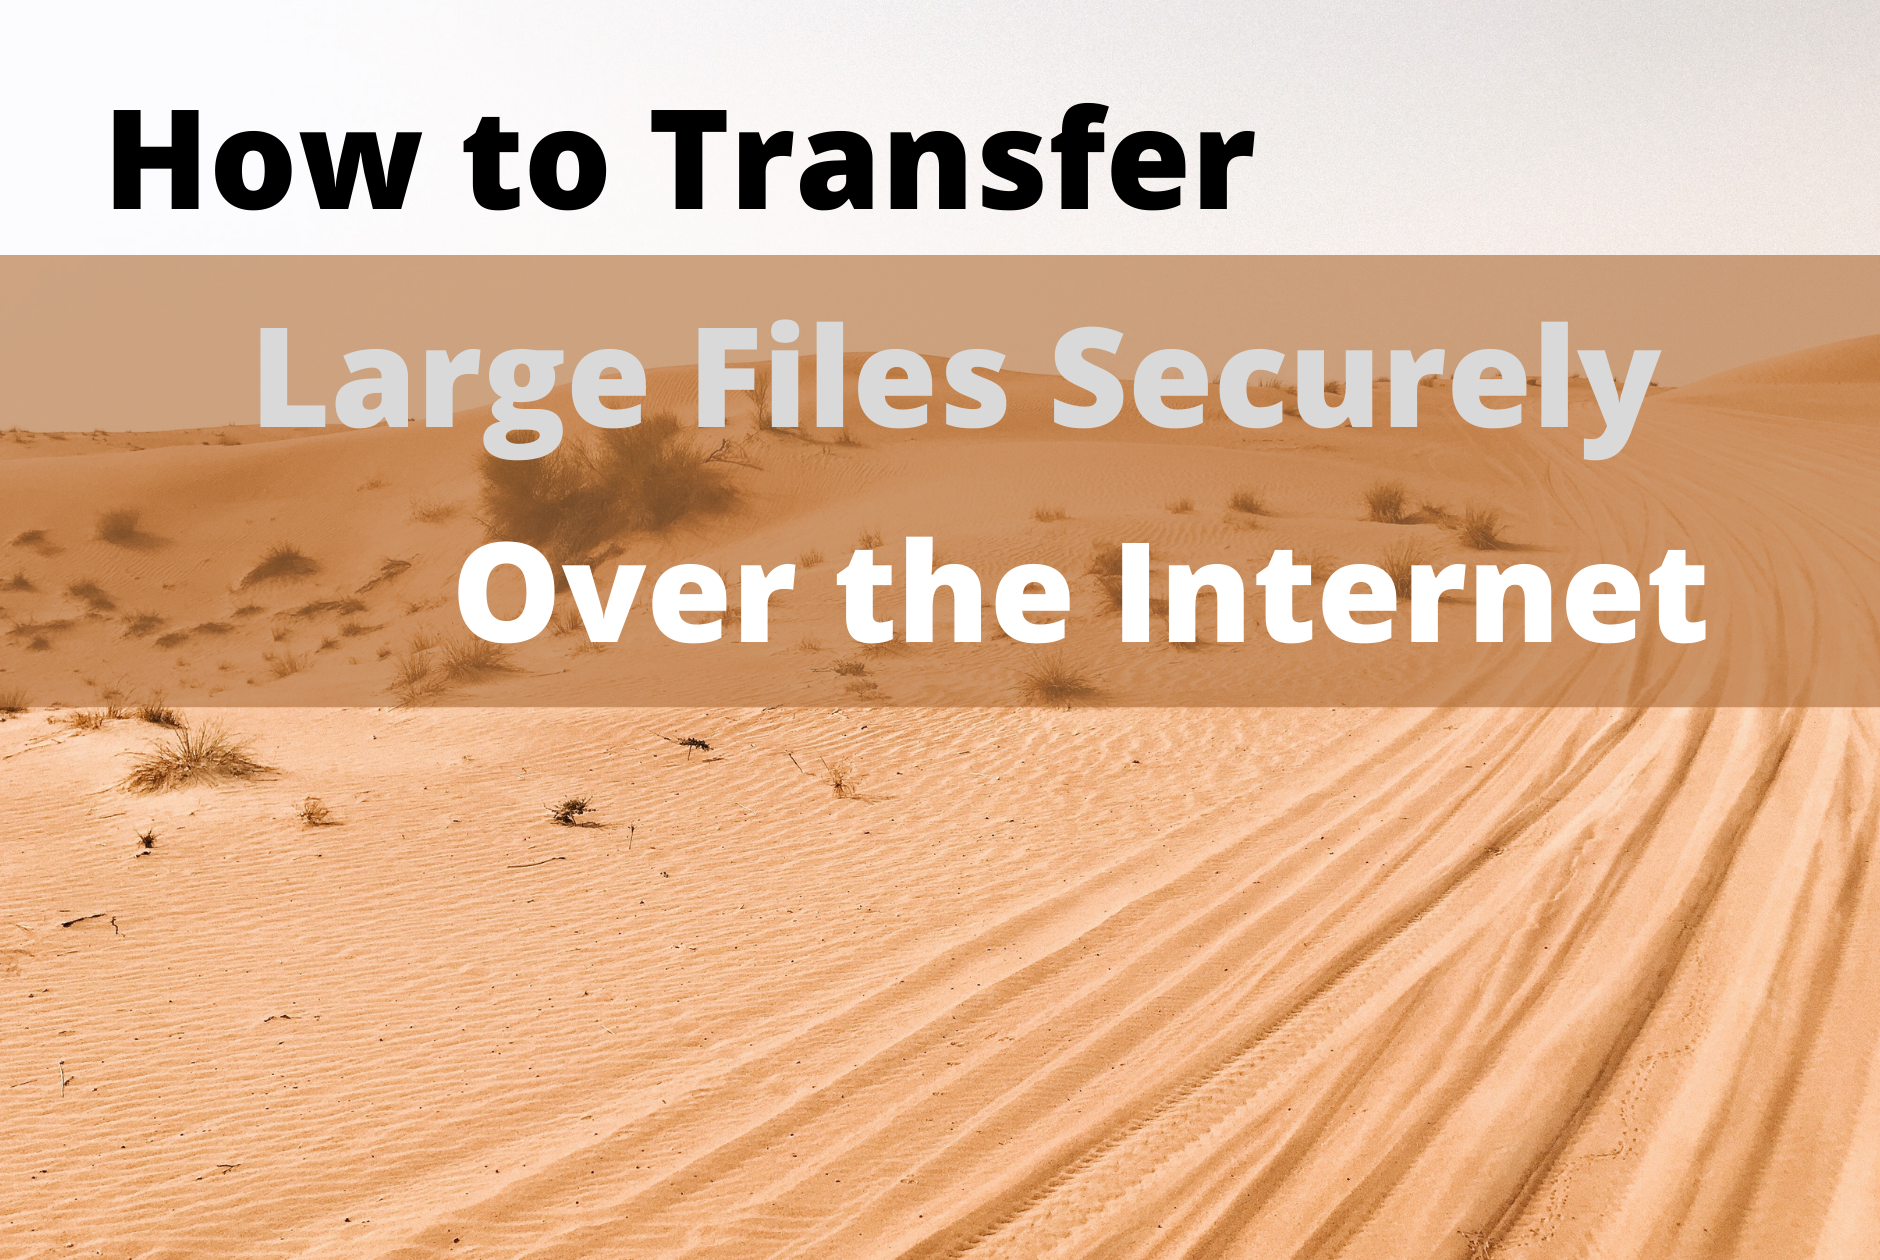 how to transfer large files securely over the internet